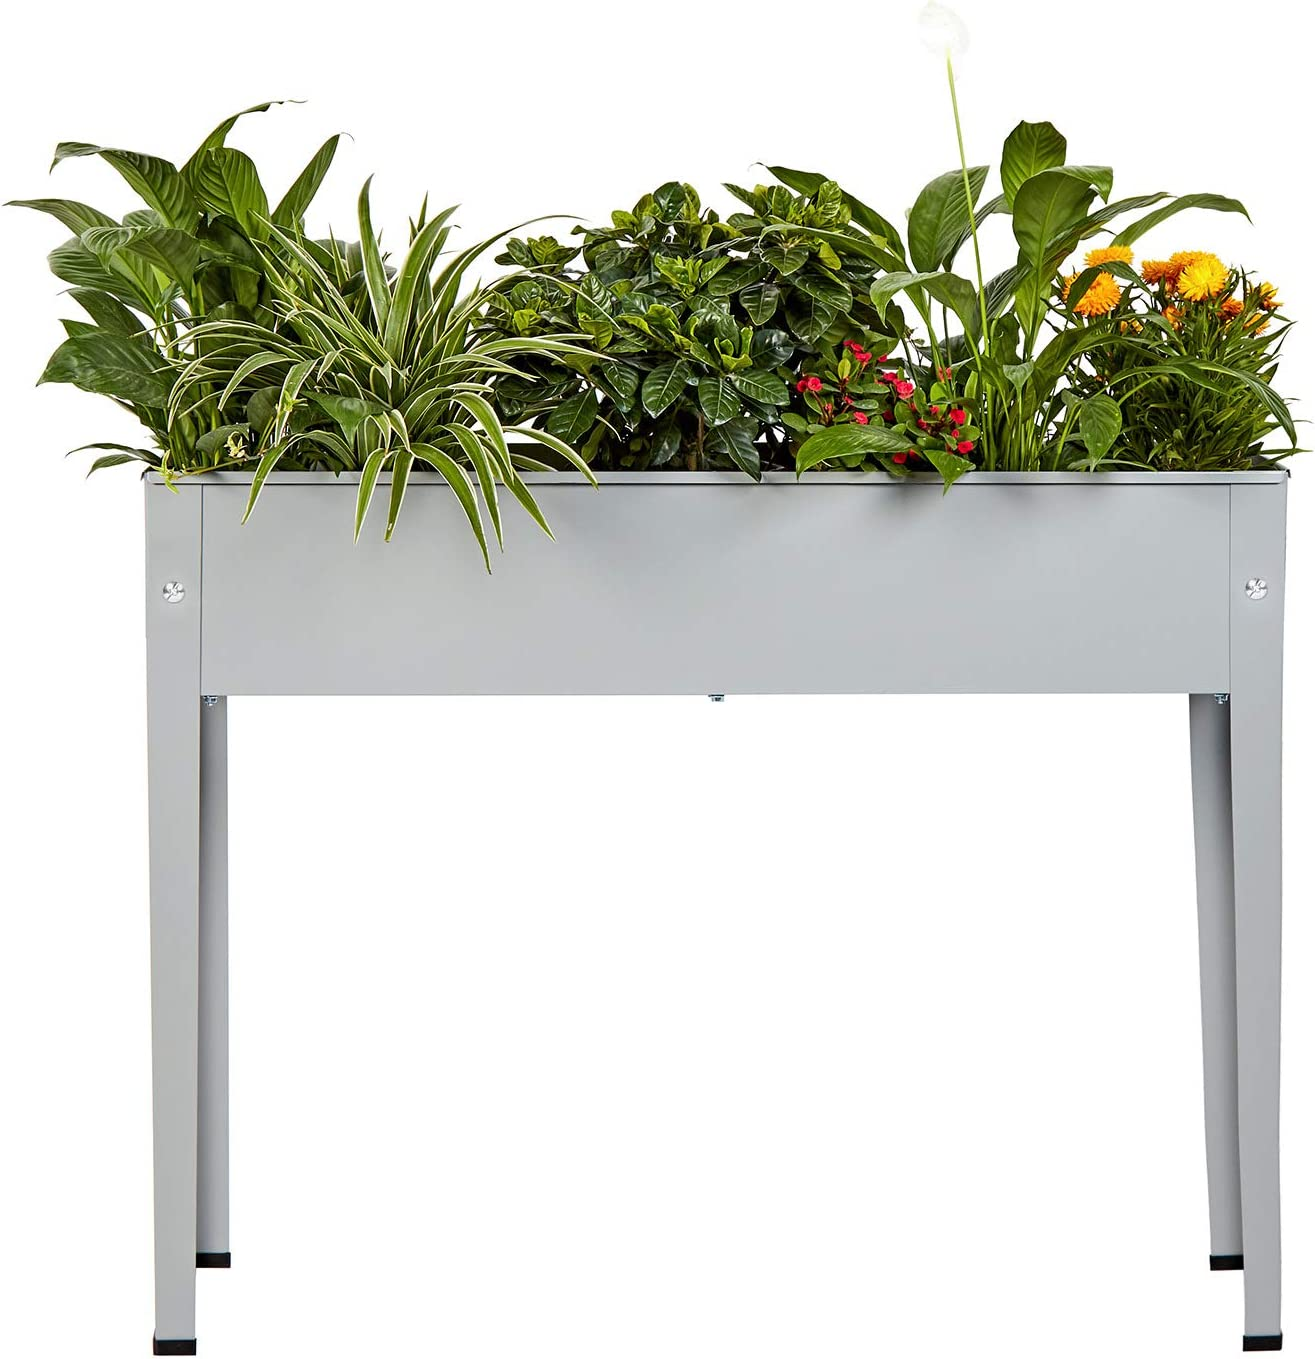 Raised Metal Garden Planter Bed,Garden Planter Box,Planting Container with Legs Suitable for Outdoor Patio Planting Herbs and Vegetables (Standard)